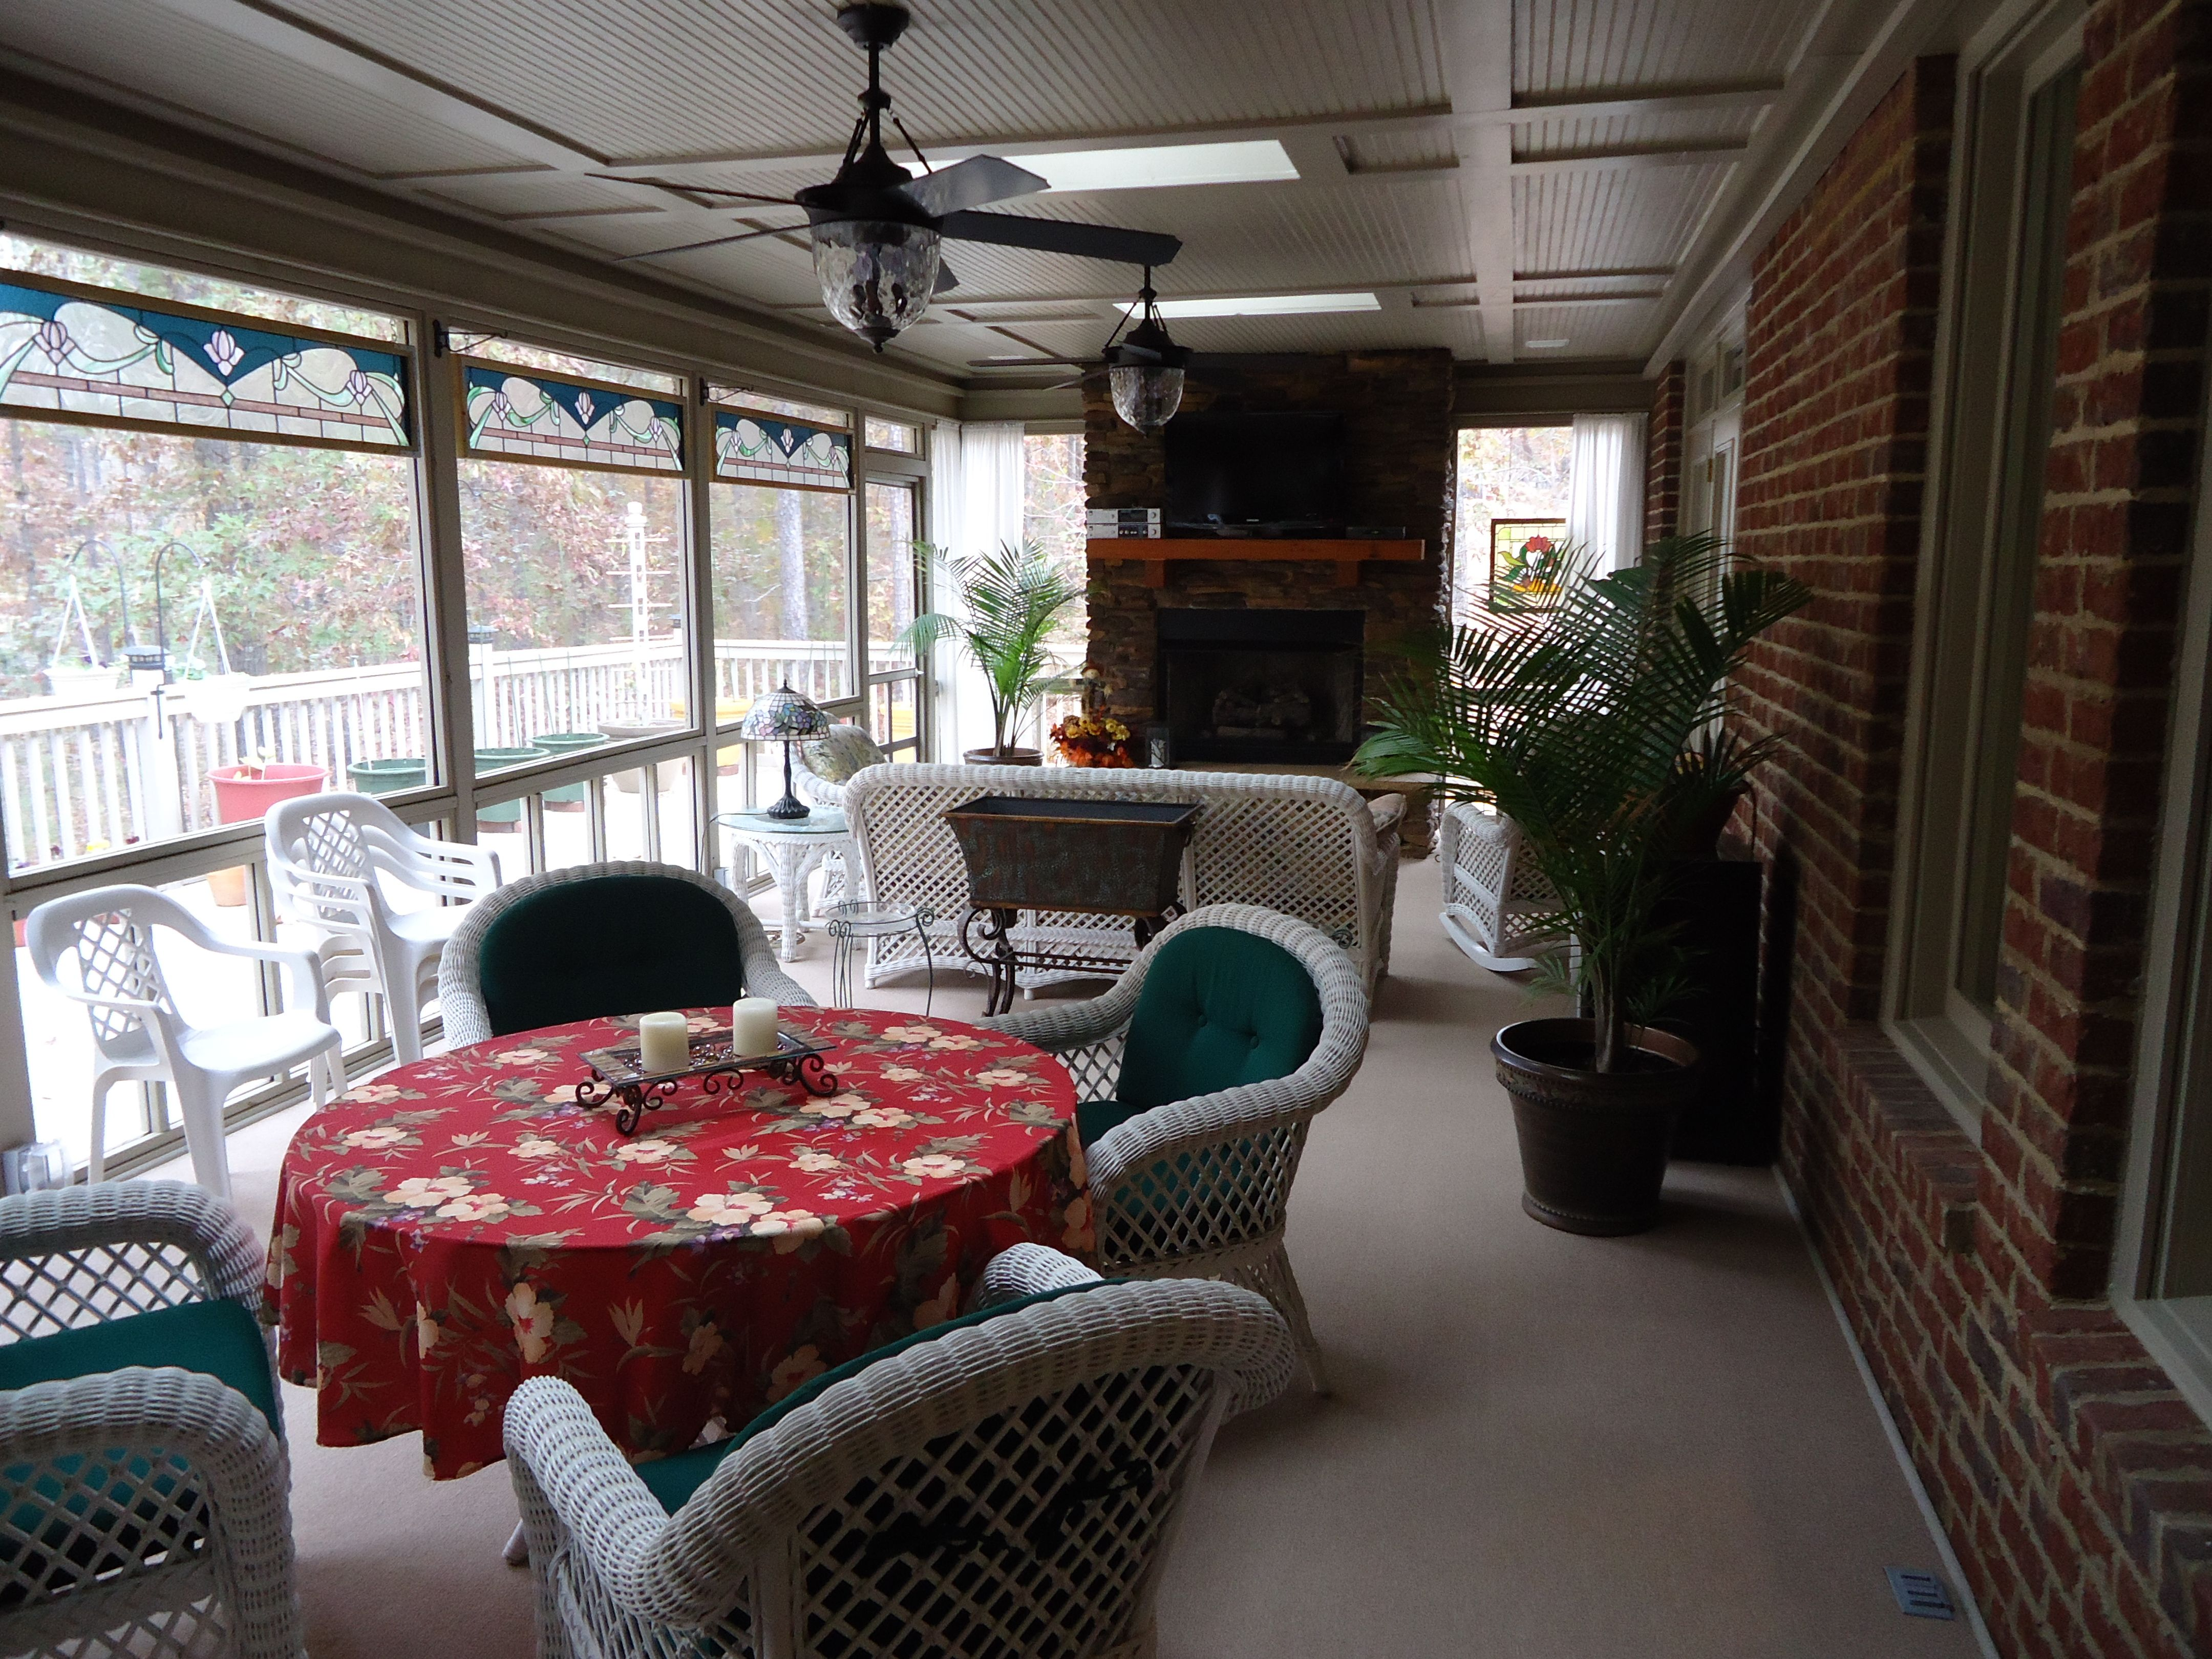 our amazing 35 screened porch stained glass panels on each